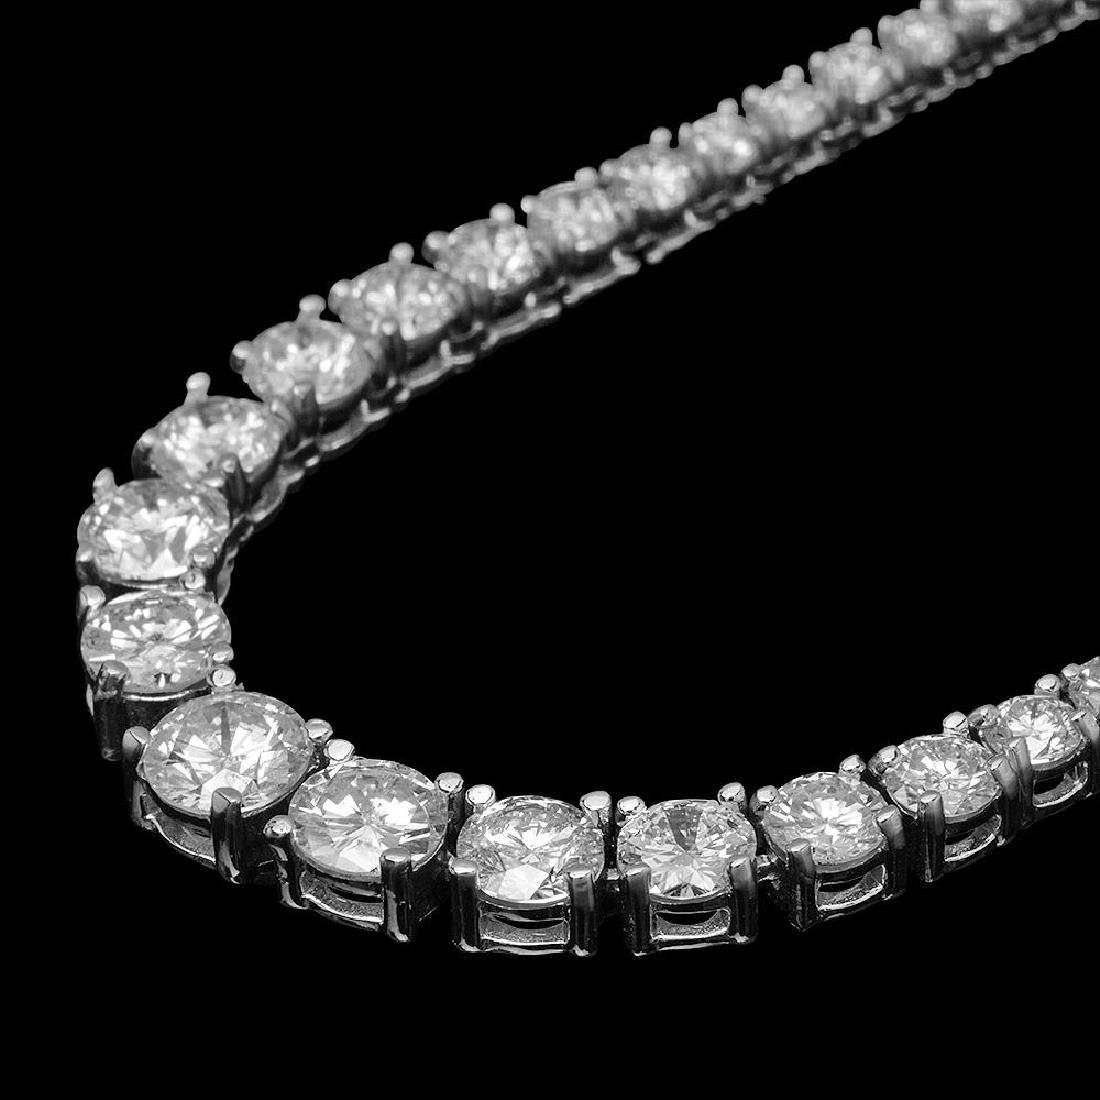 18K Gold 7.57ct Diamond Necklace - 2